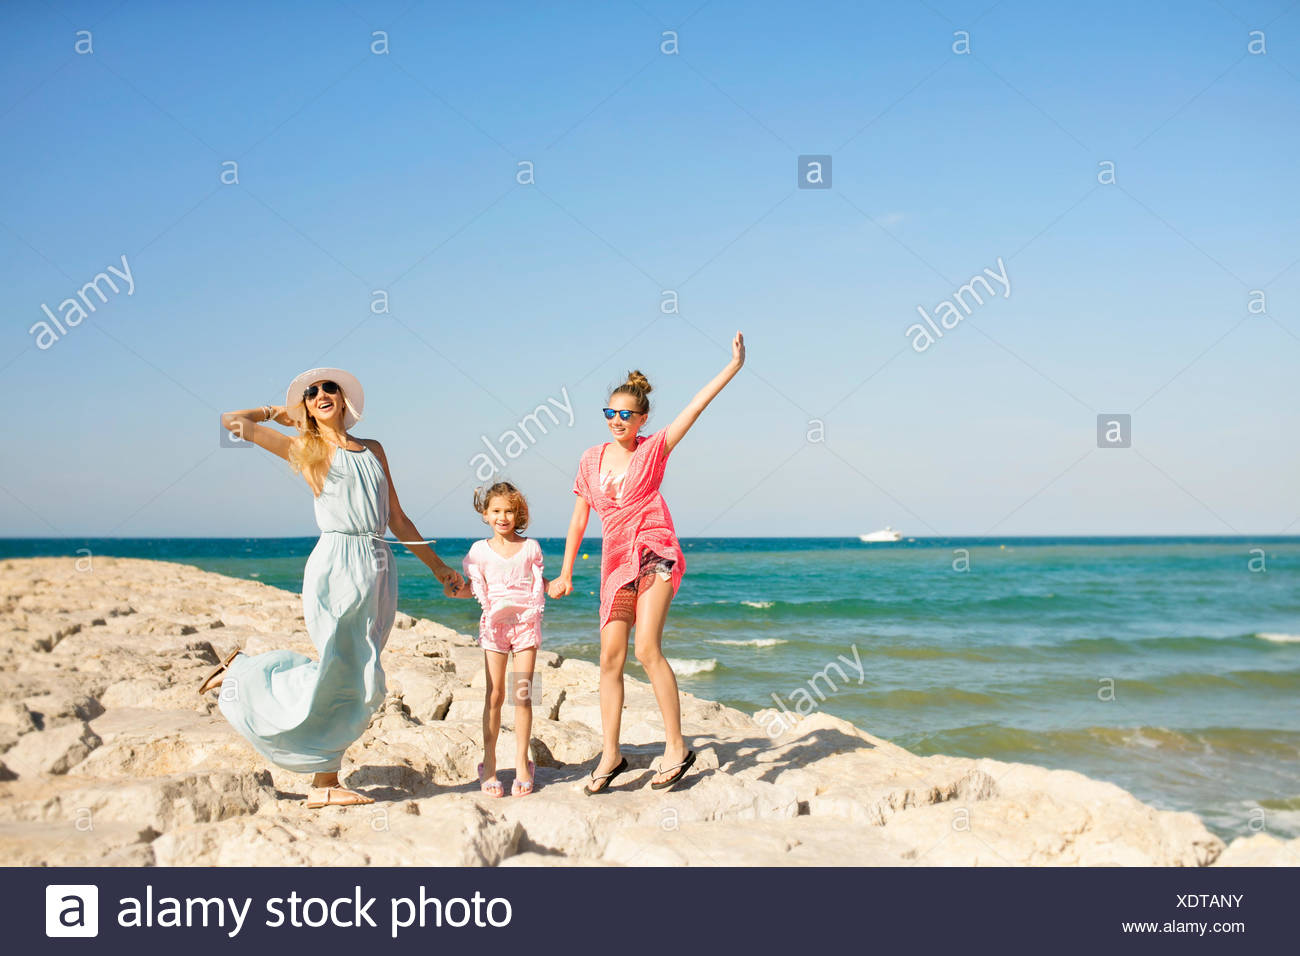 Mother and two daughters on the beach having fun, Barcelona, Spain - Stock Image